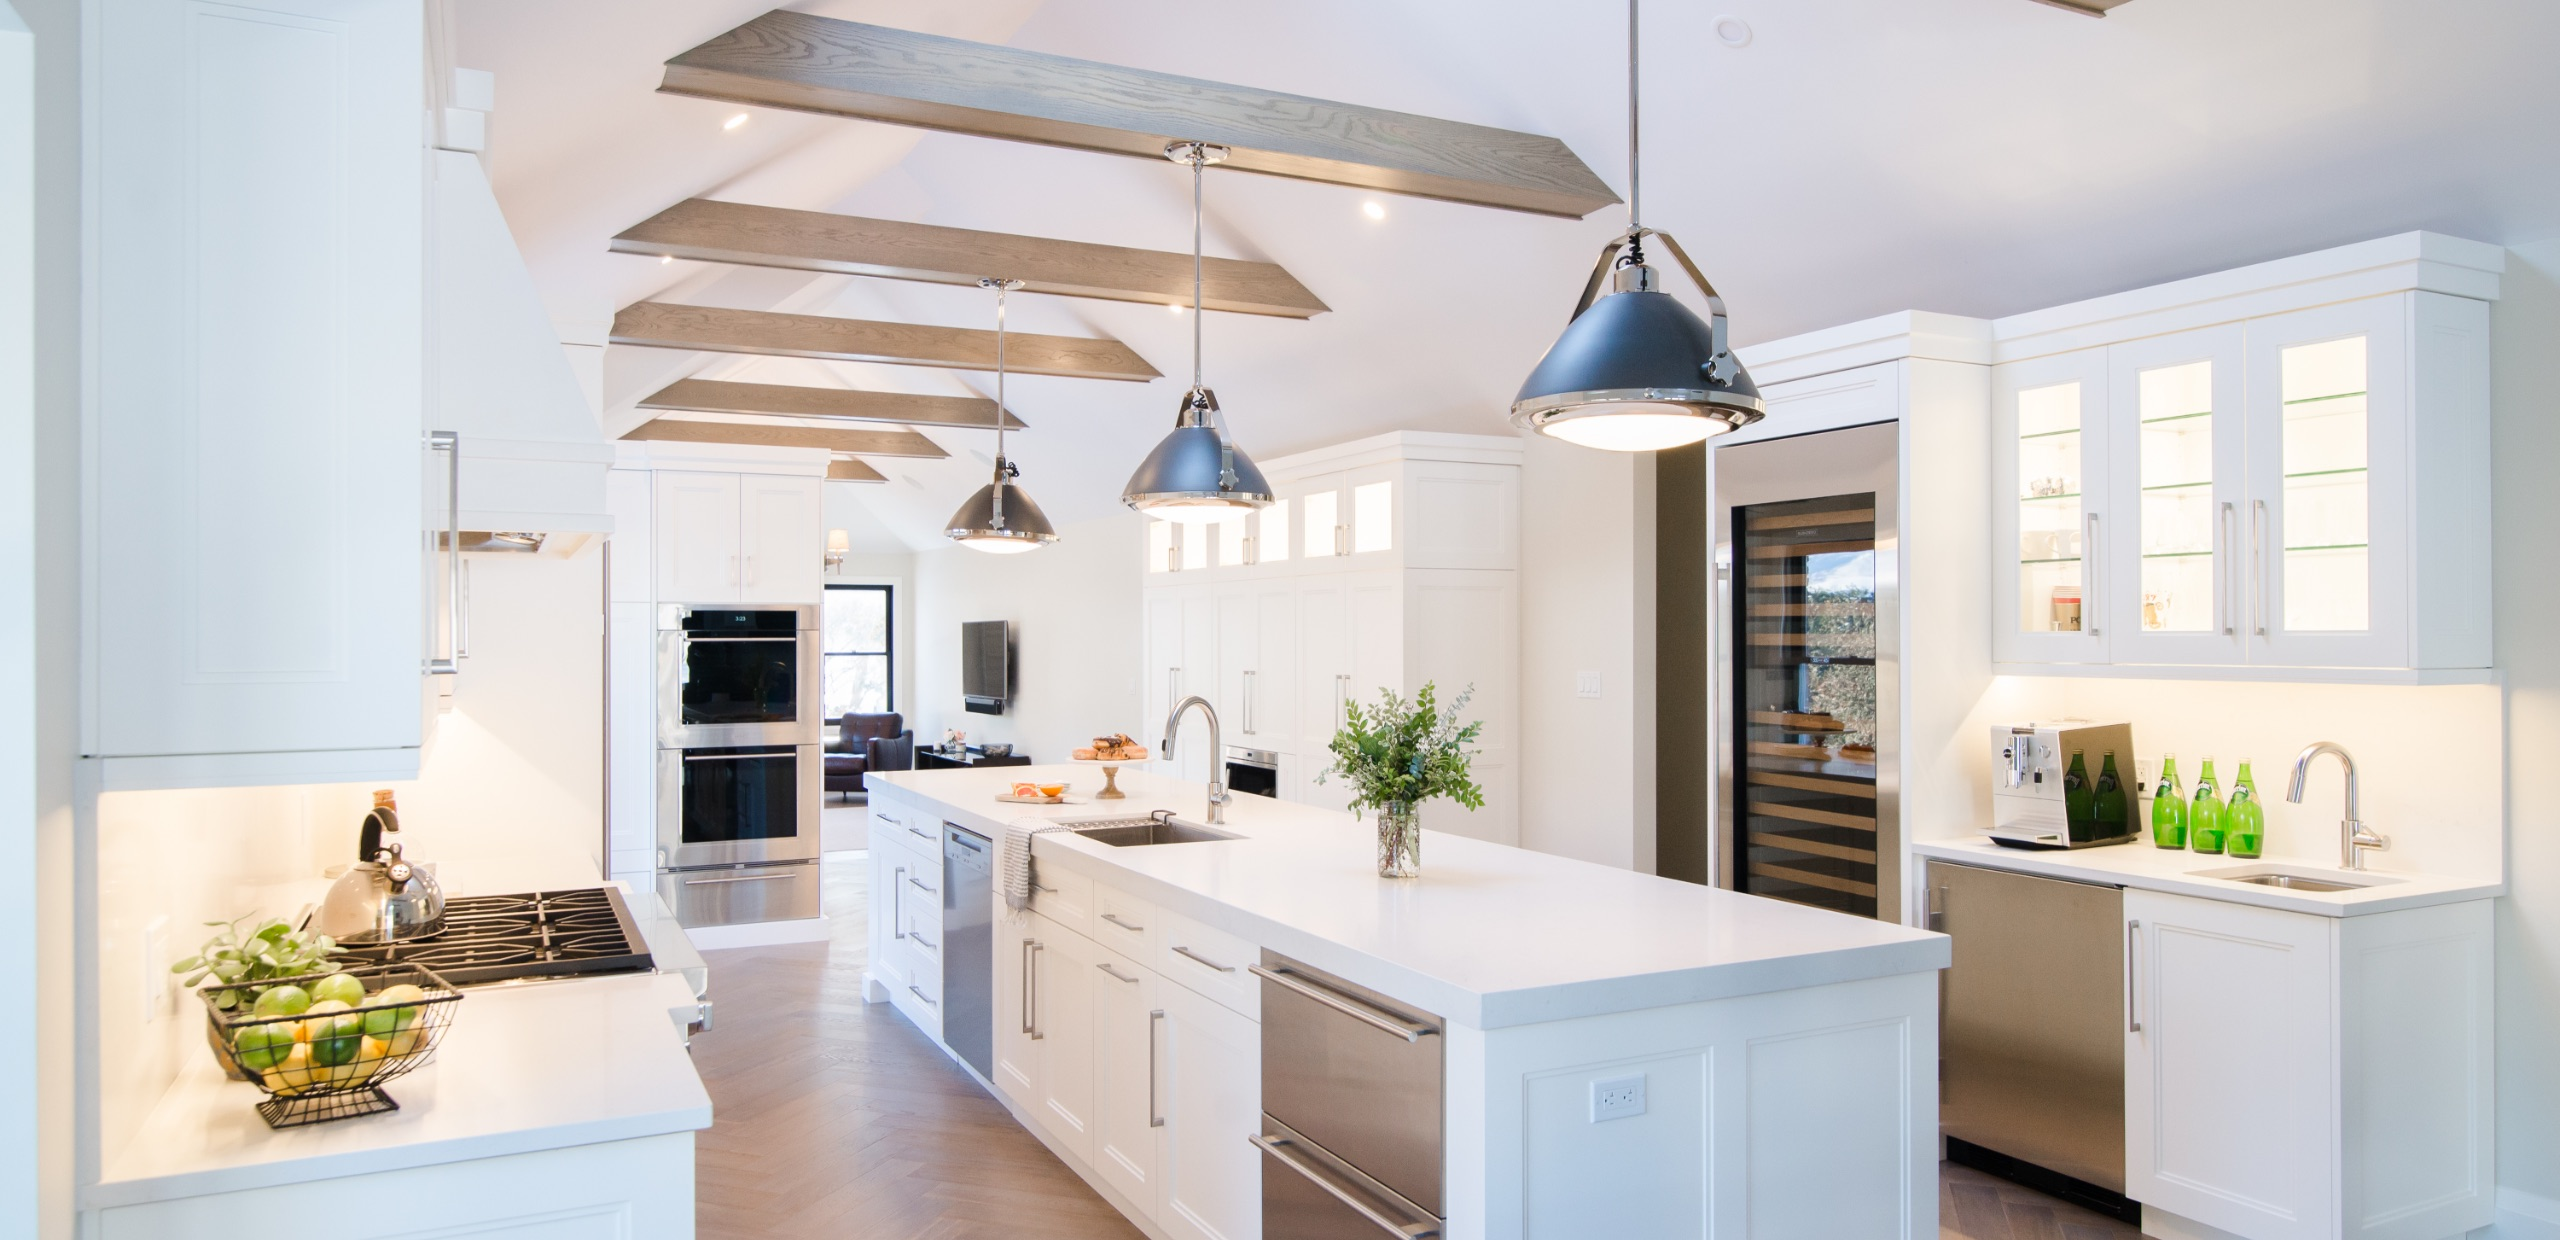 7 Benefits for Renovating Your Kitchen